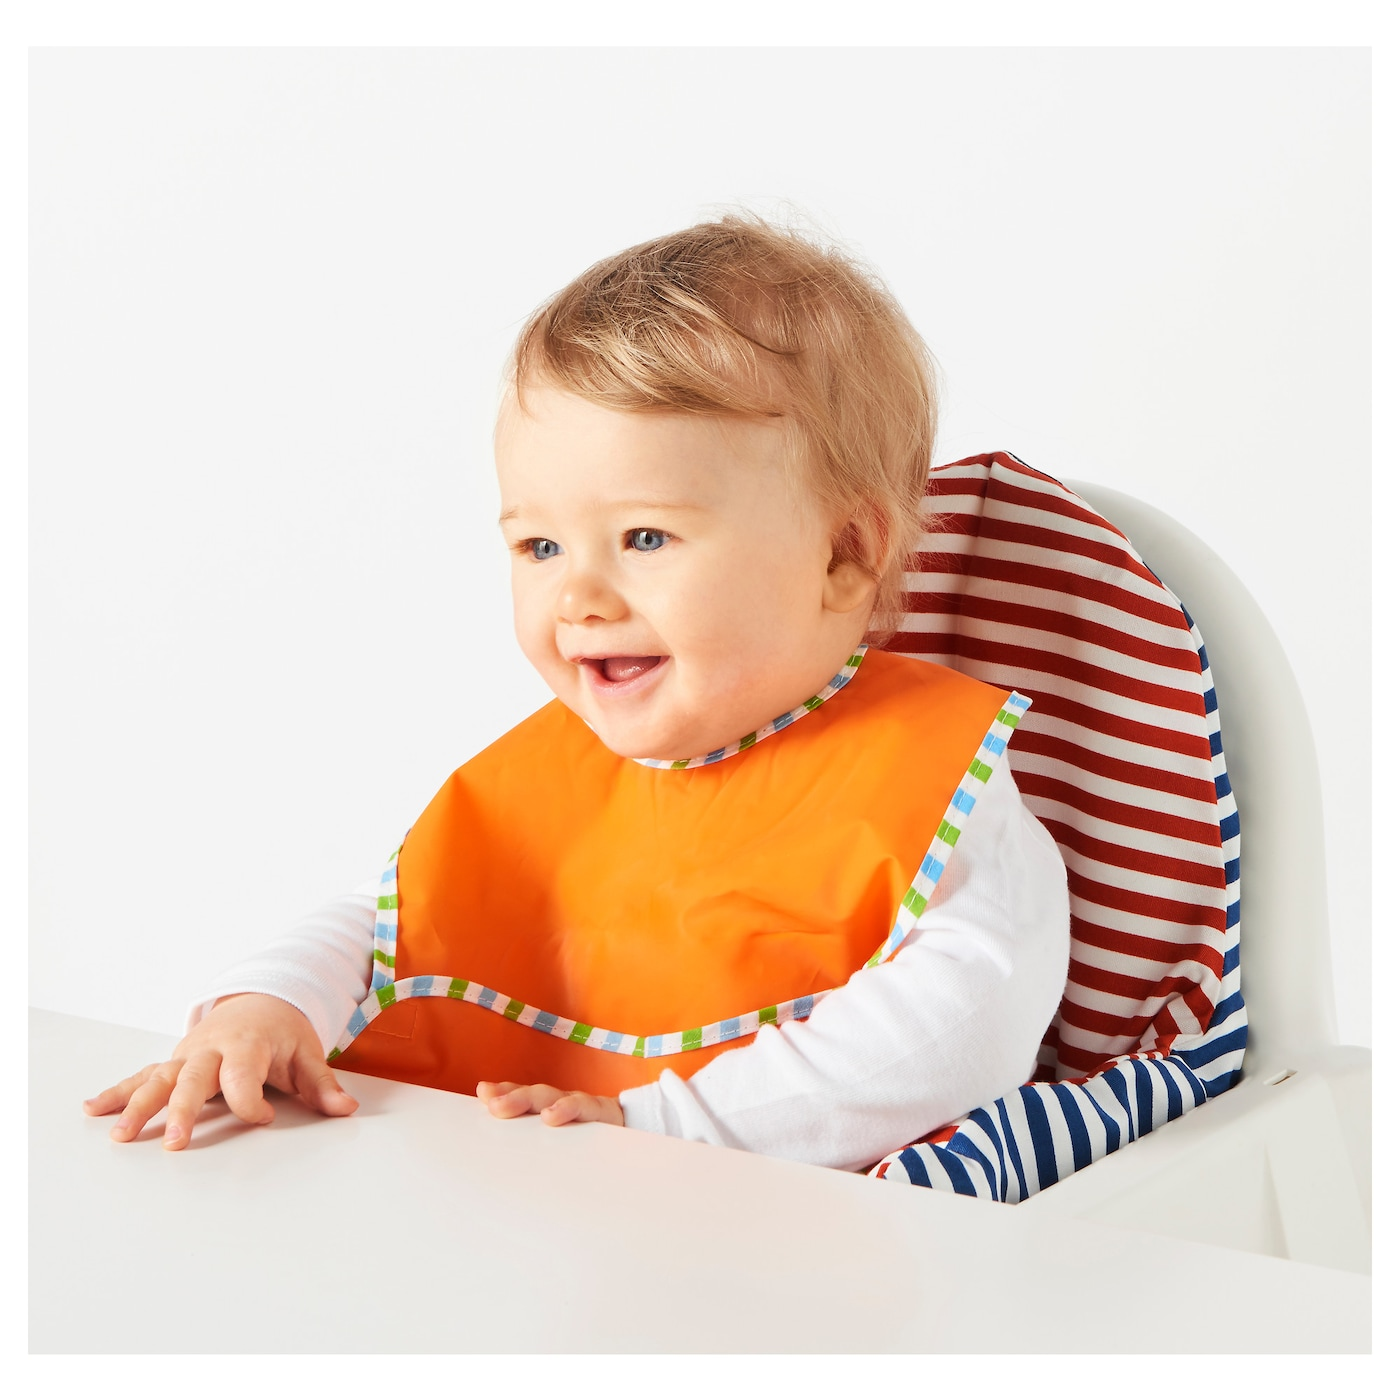 IKEA KLADD RANDIG bib The touch and close fastening makes it easy to put on and take off.